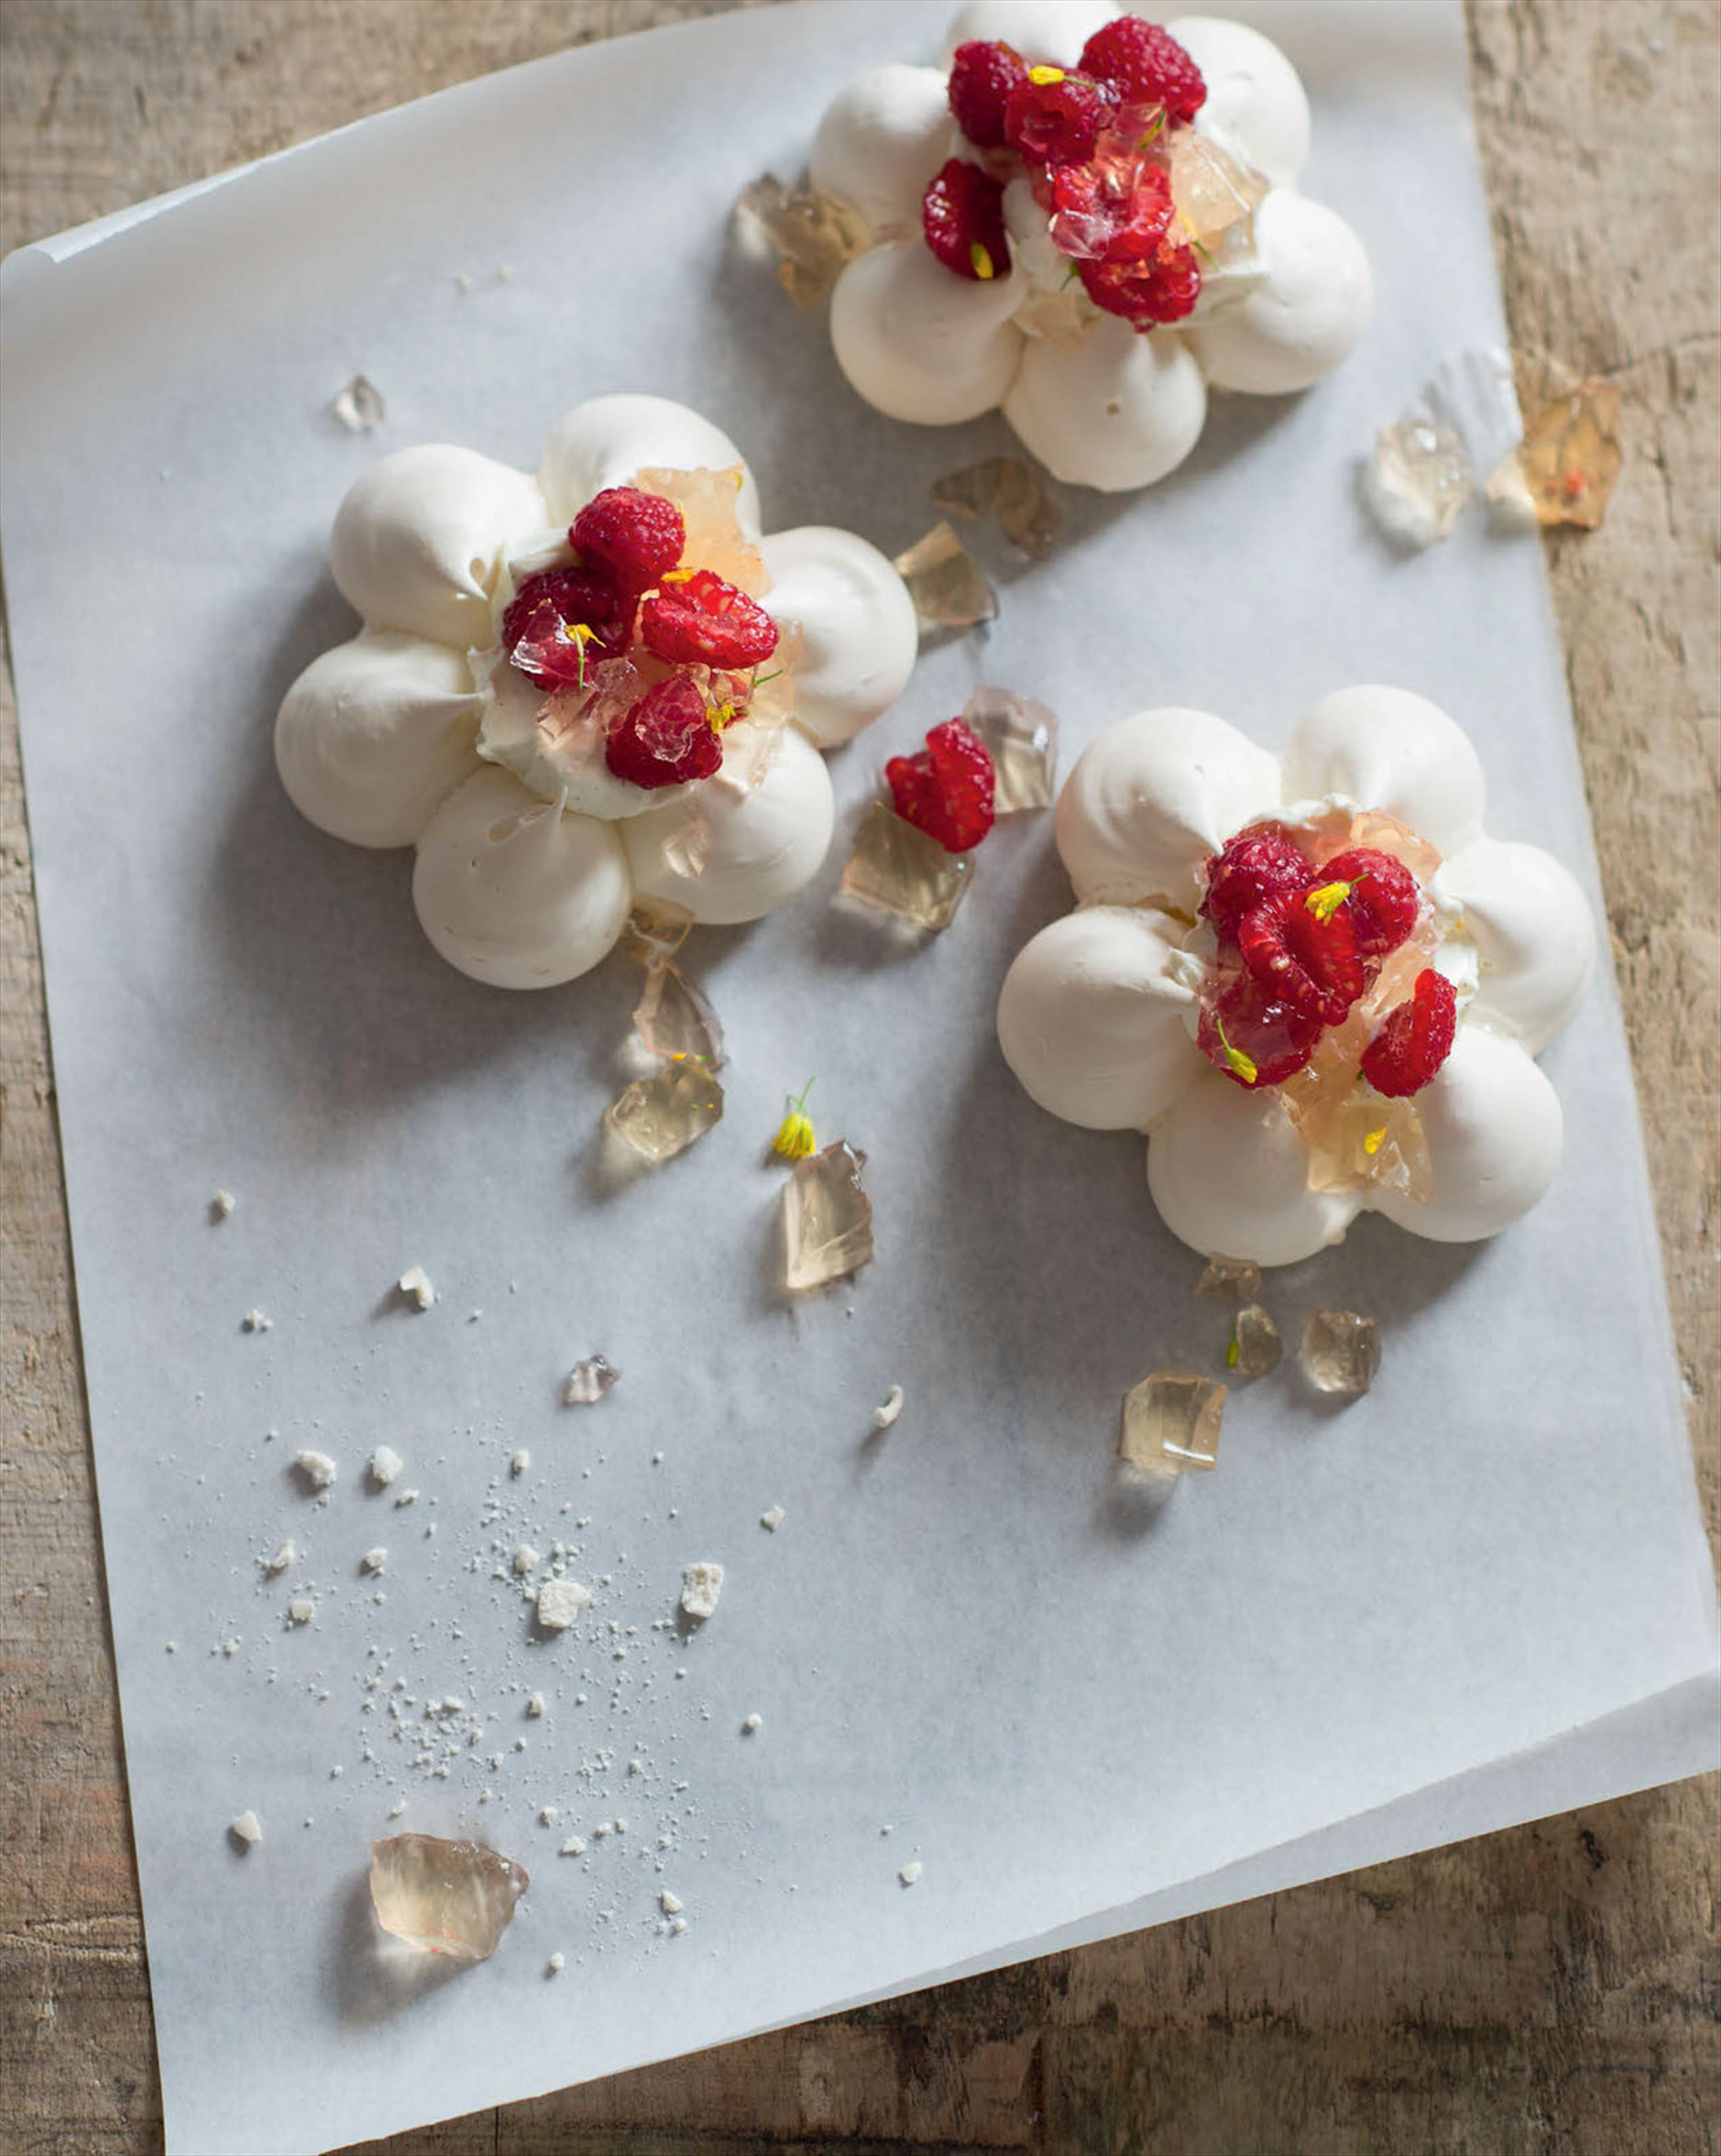 Pavlova 'flowers' with apple jelly, raspberries & vanilla labneh